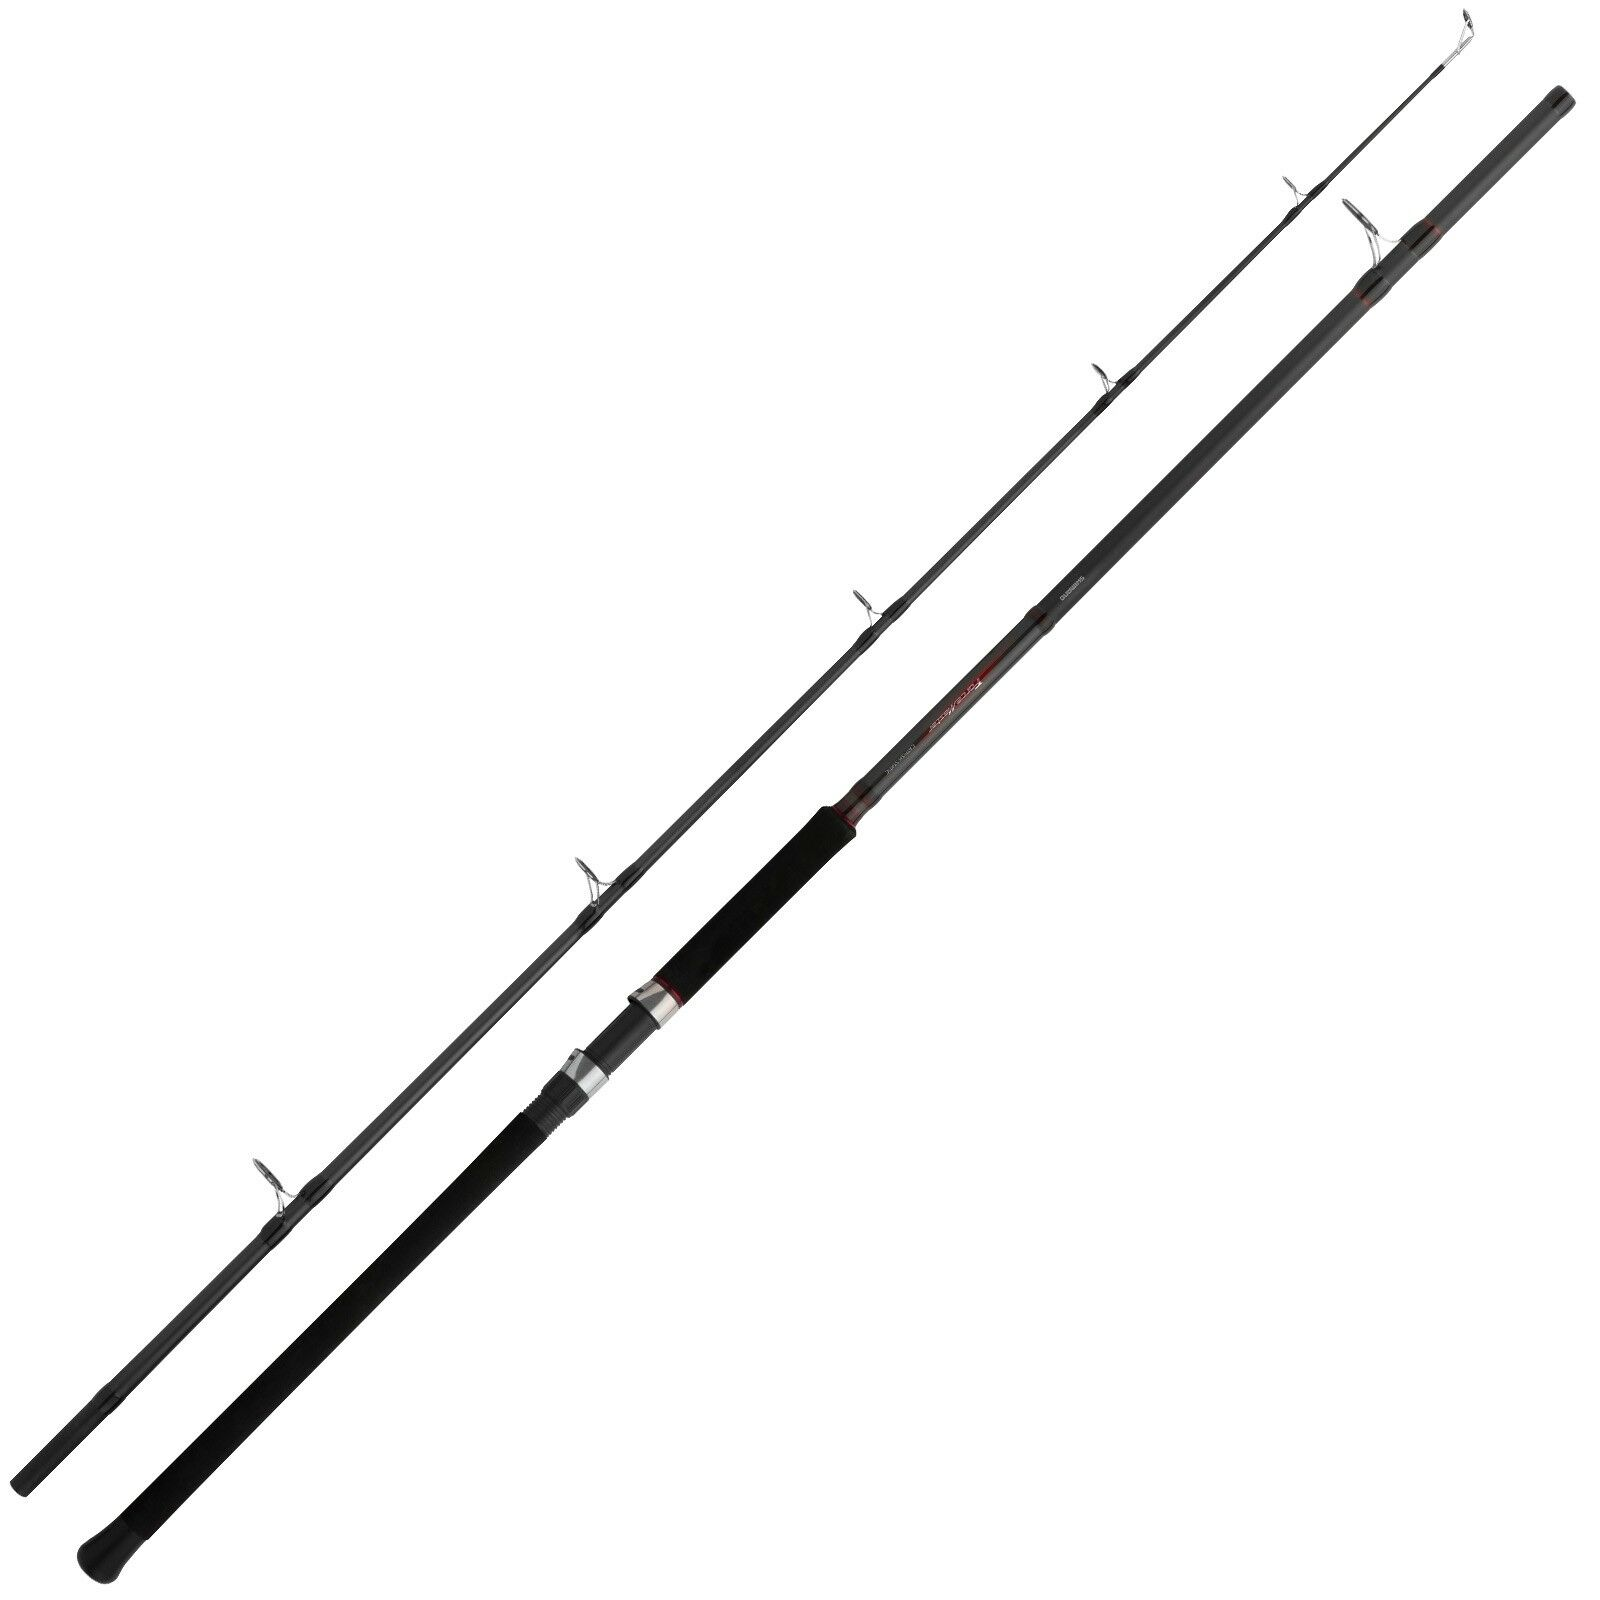 Shimano wallerrute Forcemaster Catfish Static 330 3,30m 500g